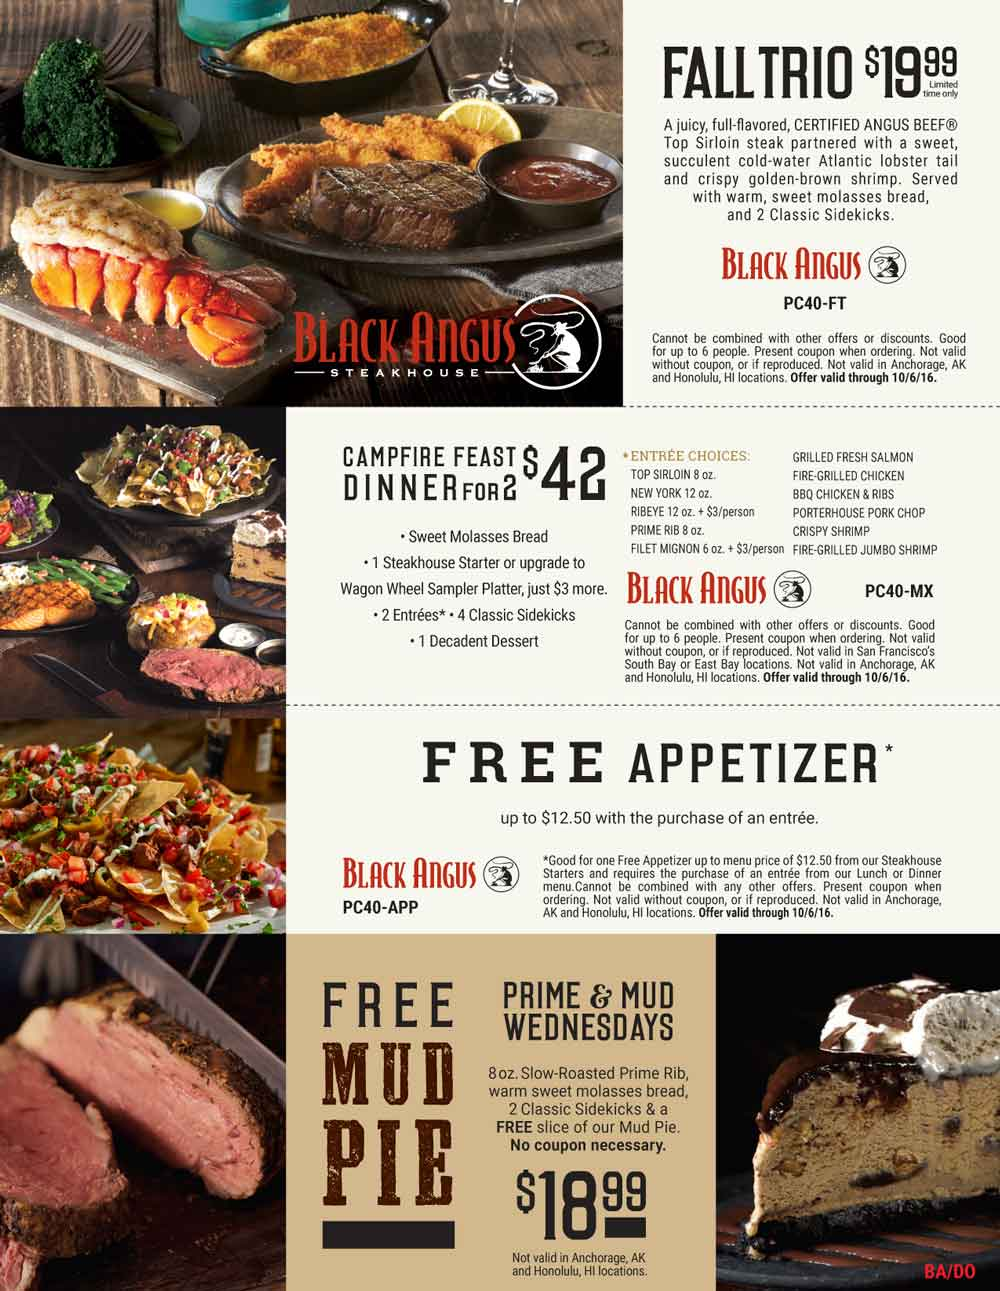 Black Angus Coupon October 2017 Free appetizer with your entree & more at Black Angus steakhouse